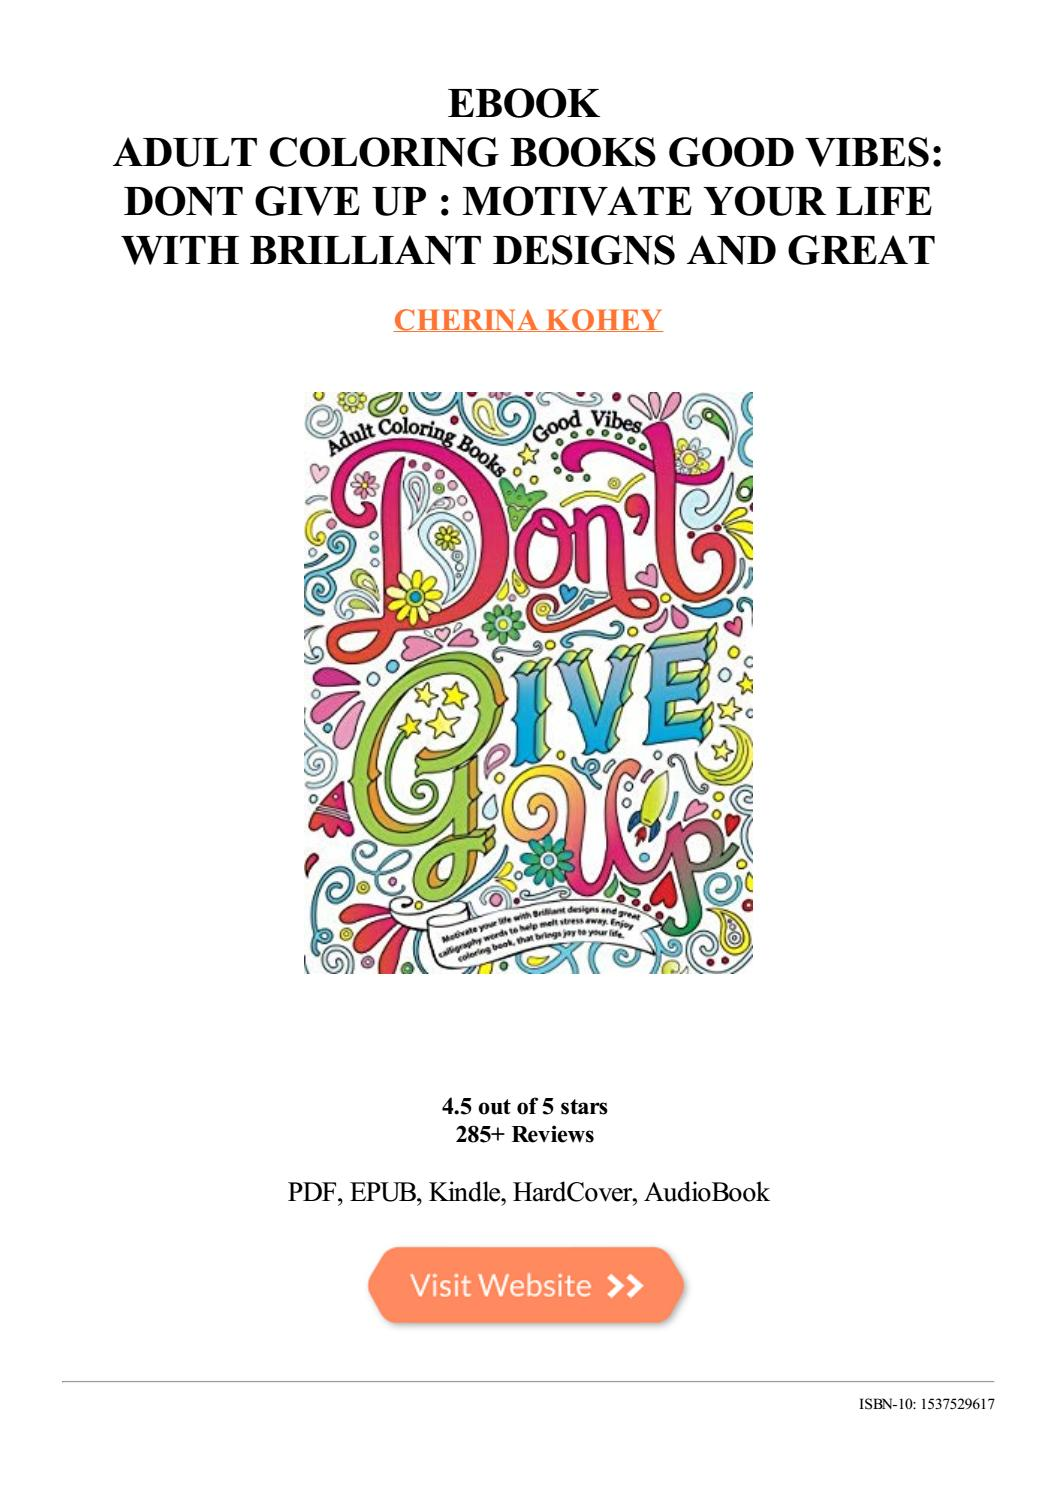 Don/'t give up Motivate your life with Brilliant designs and great calligraphy words to help melt stress away. Adult Coloring Books Good vibes